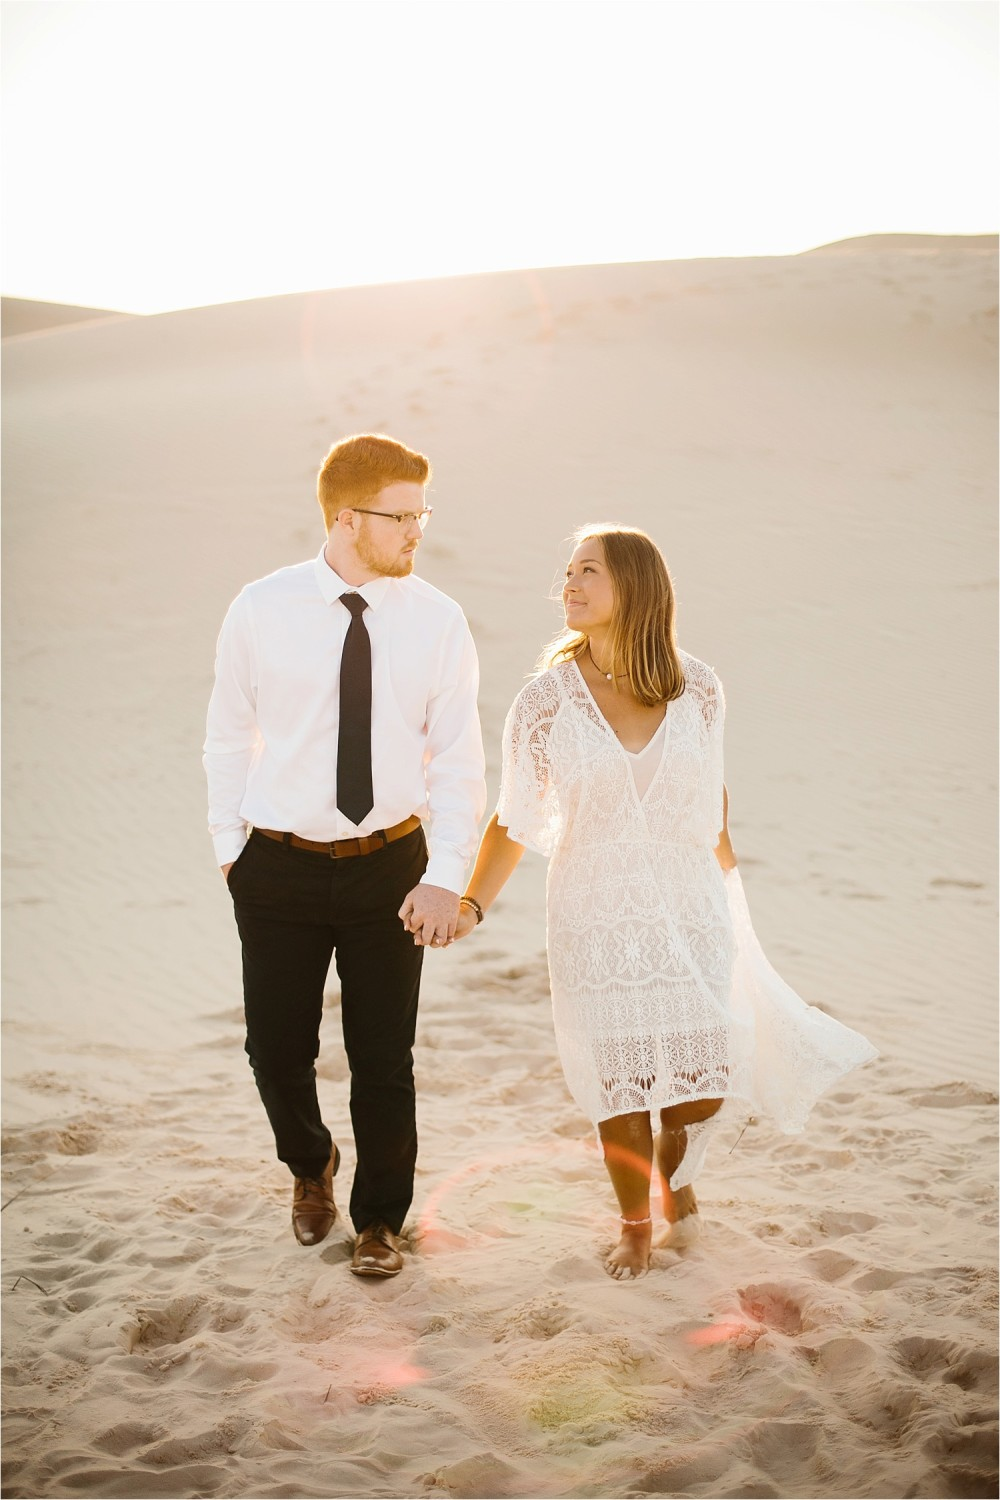 Lauren + Jacob __ a monahans sand dunes engagement session at sunrise by North Texas Wedding Photographer, Rachel Meagan Photography __ 21